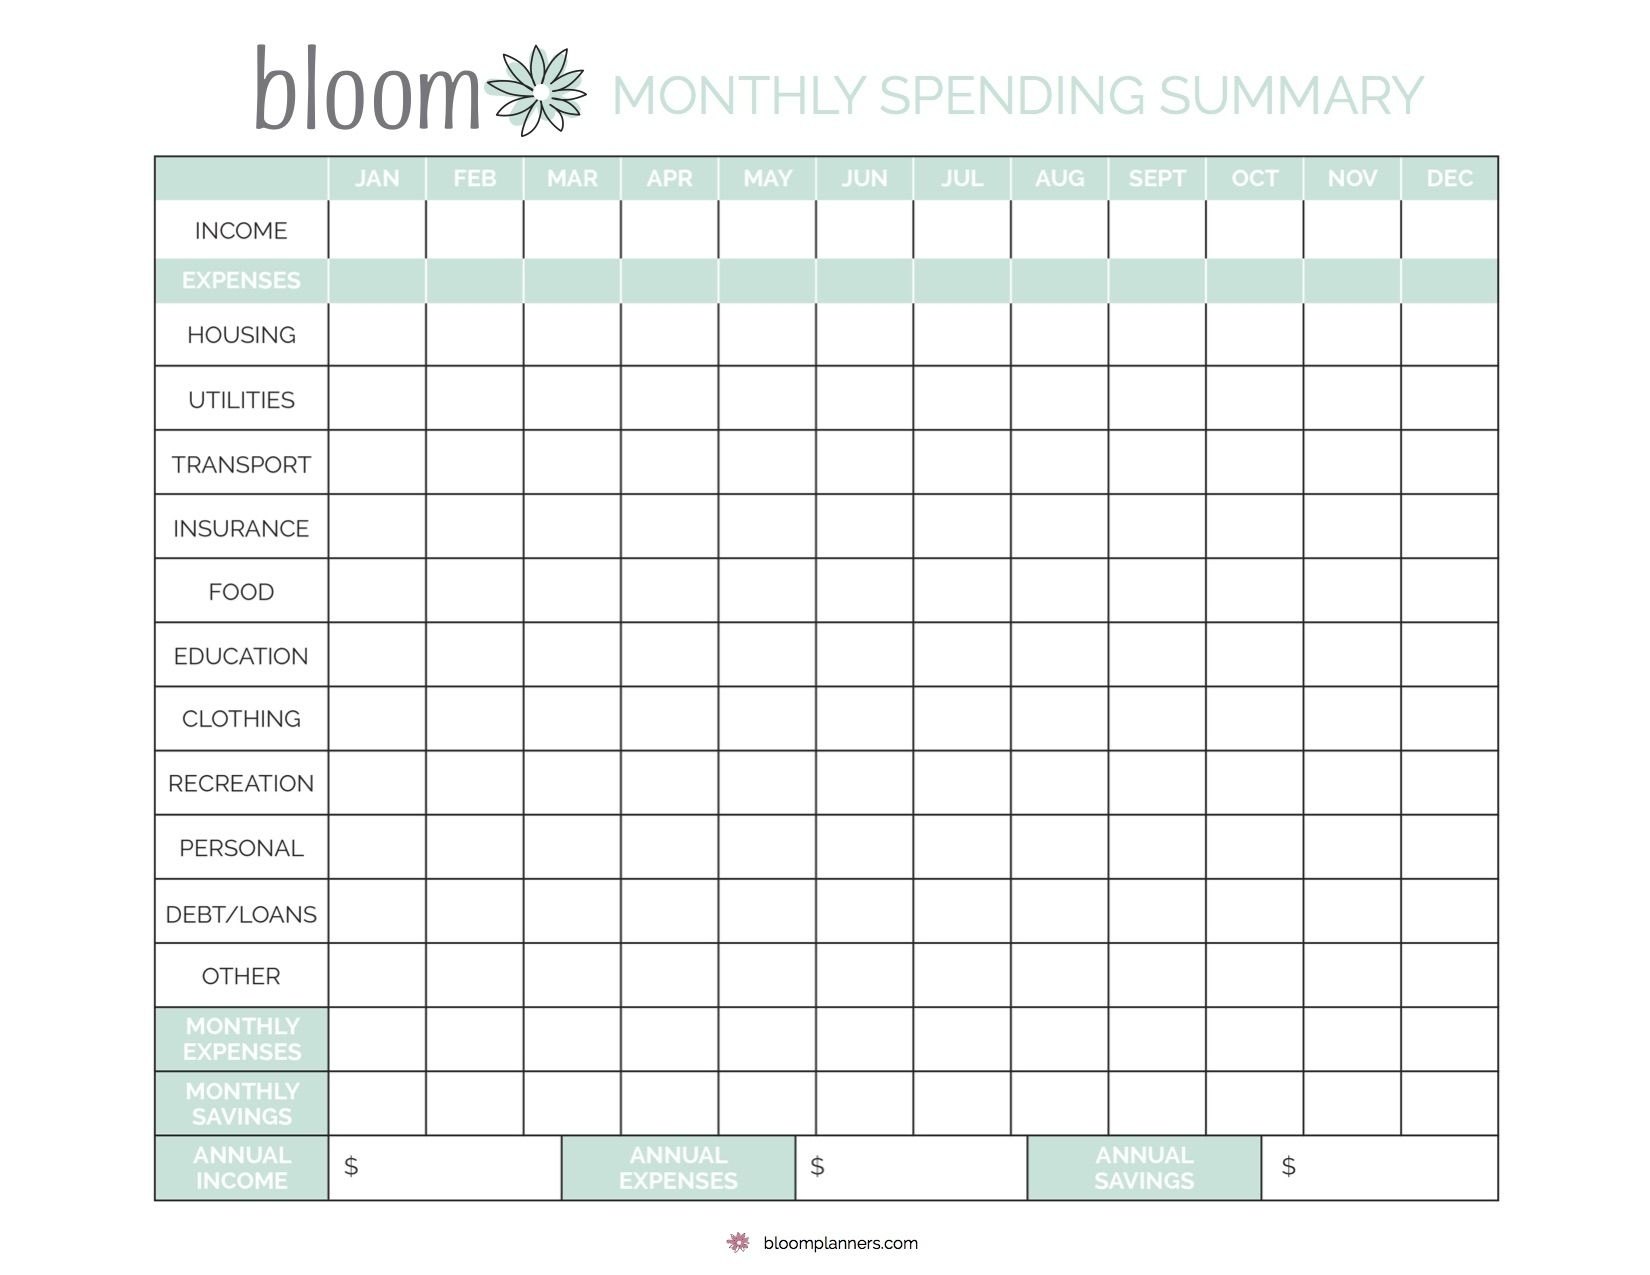 Free Printable Monthly Bill Tracking From Bloom Daily Planners. Free throughout Free Printable Monthly Bill Tracker